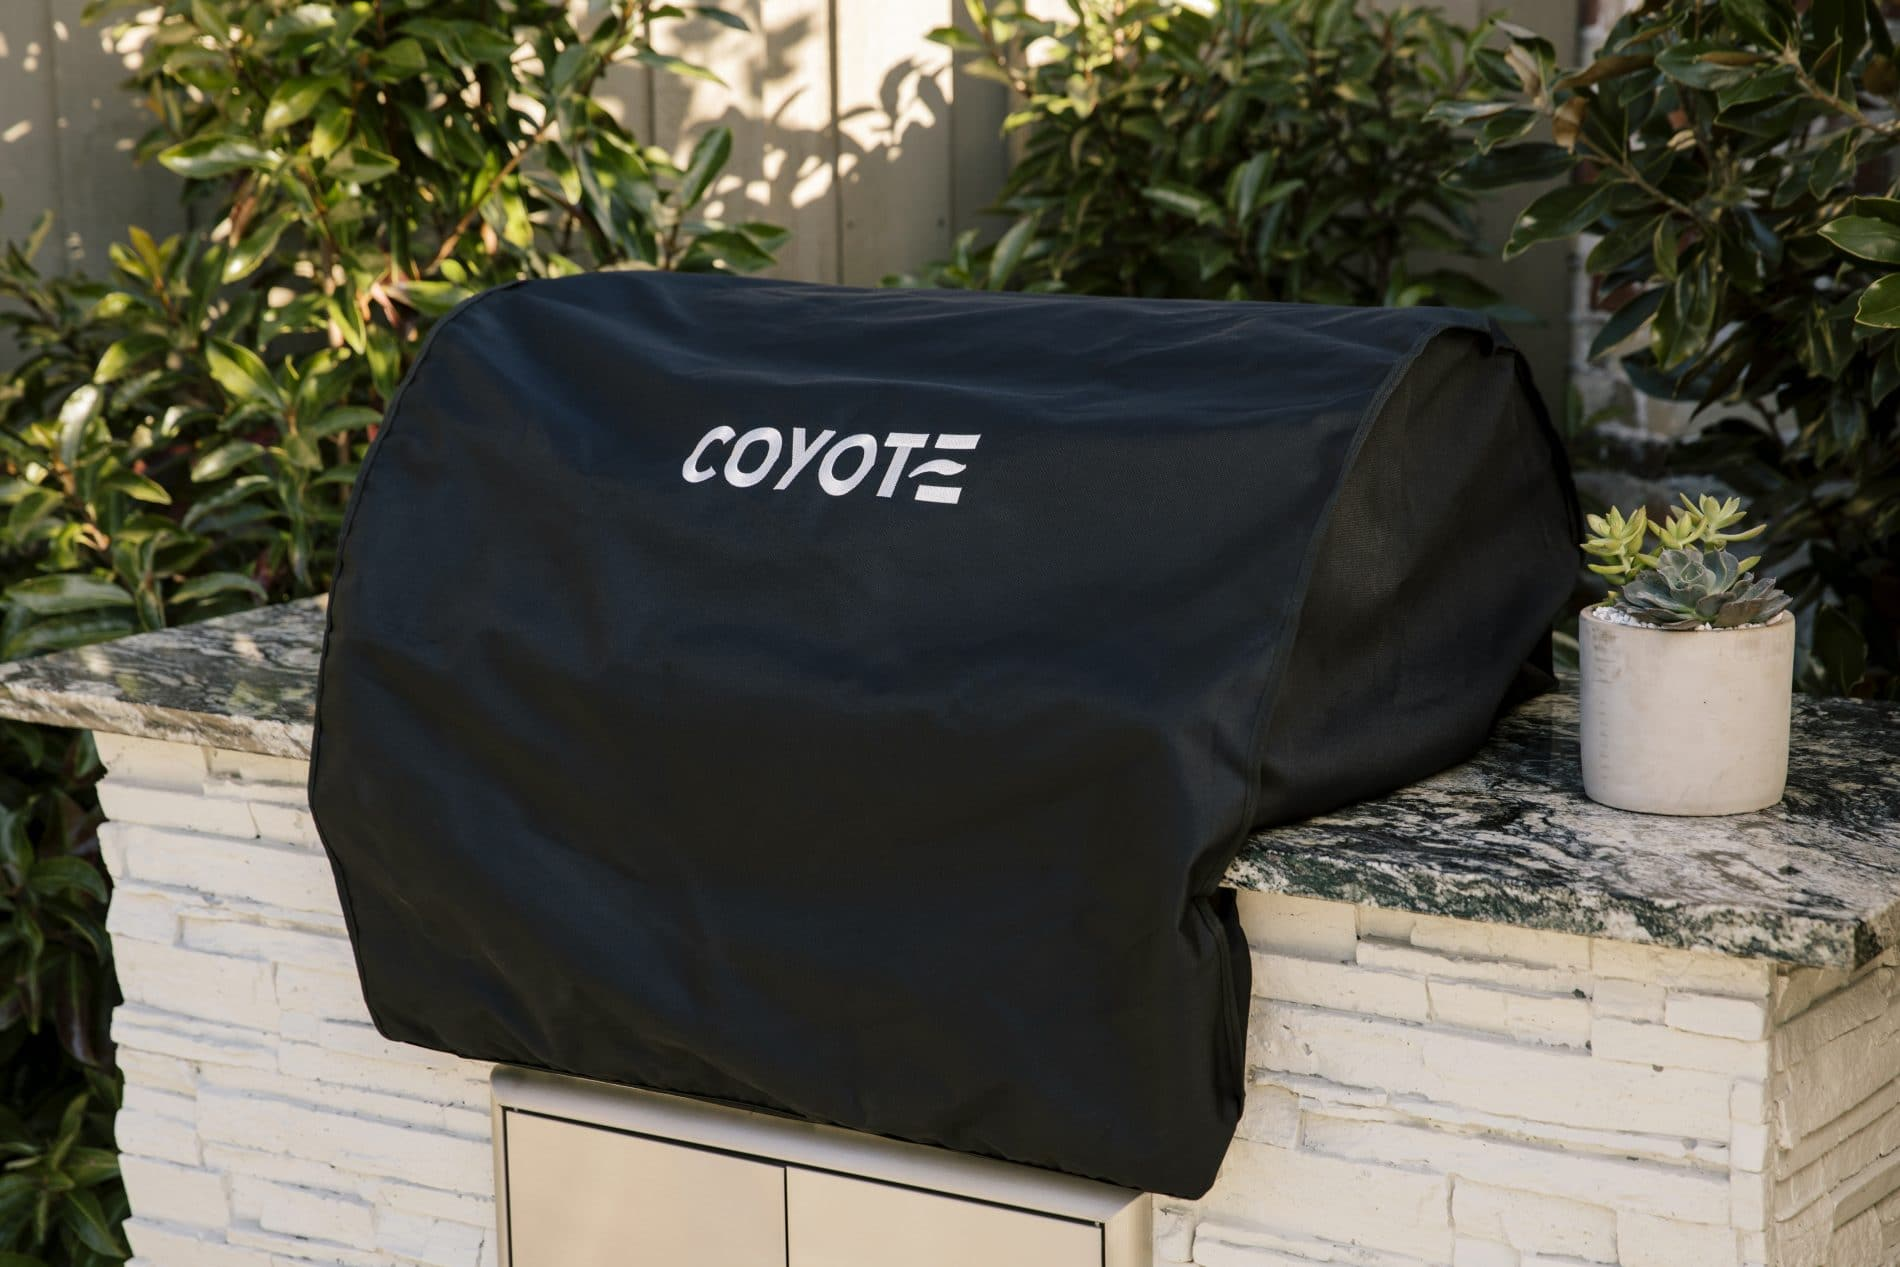 Gallery - Coyote Outdoor Living on Coyote Outdoor Living Inc id=12366